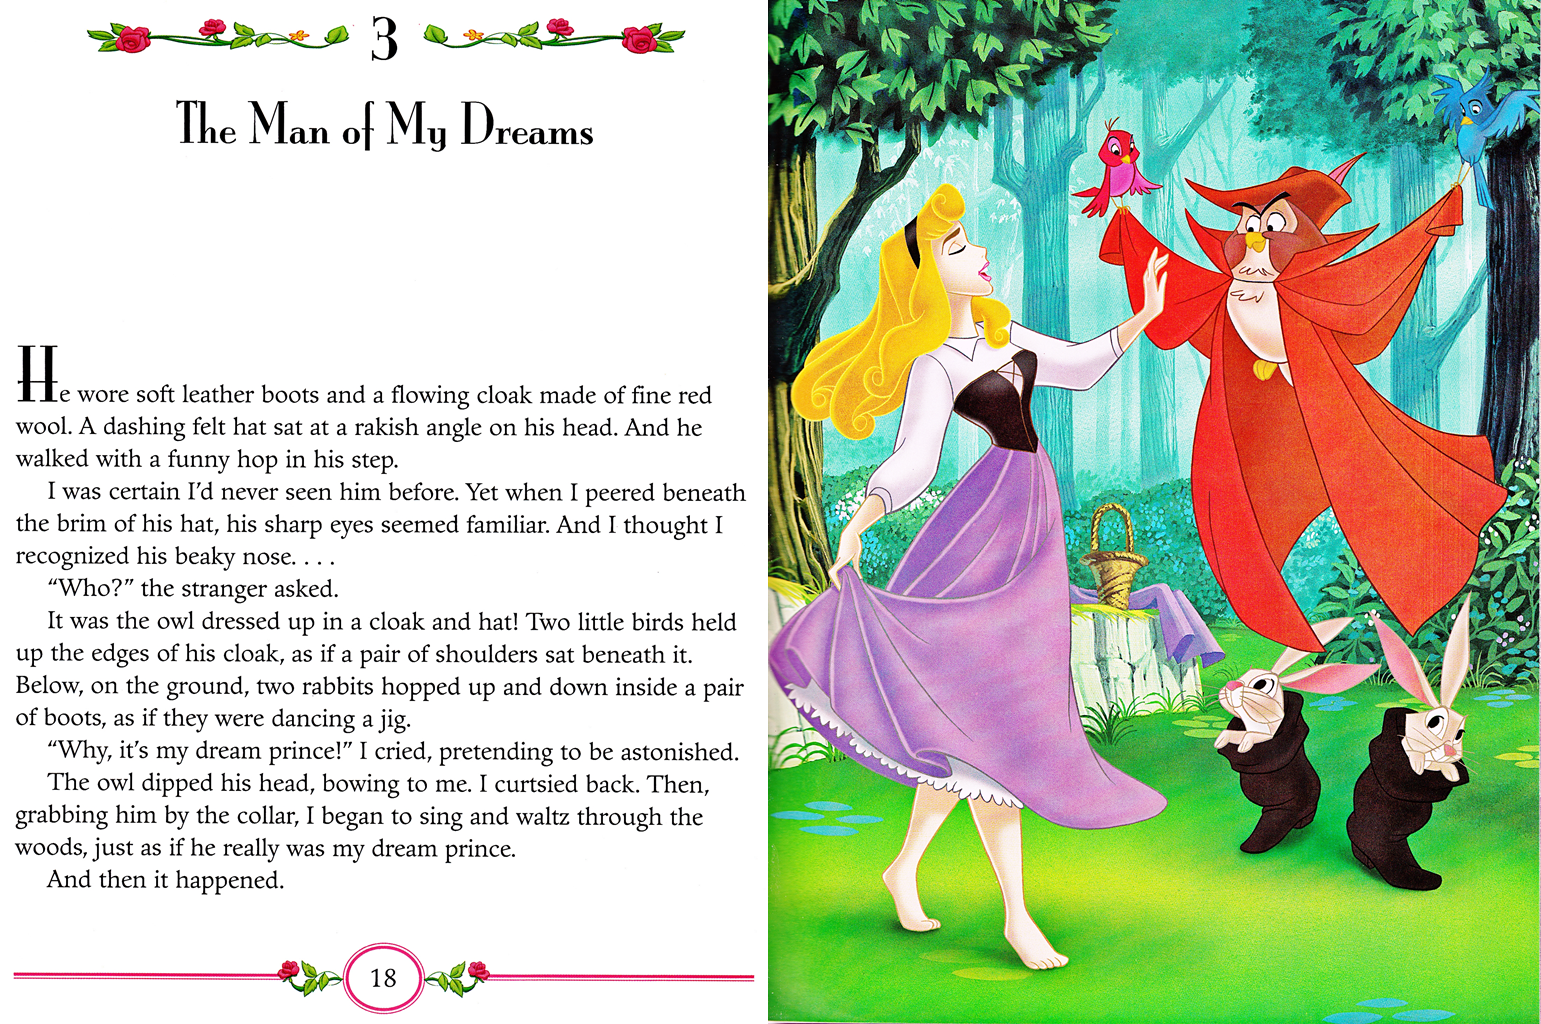 Walt Disney Book Scans - Sleeping Beauty: My Side of the Story (Princess Aurora)